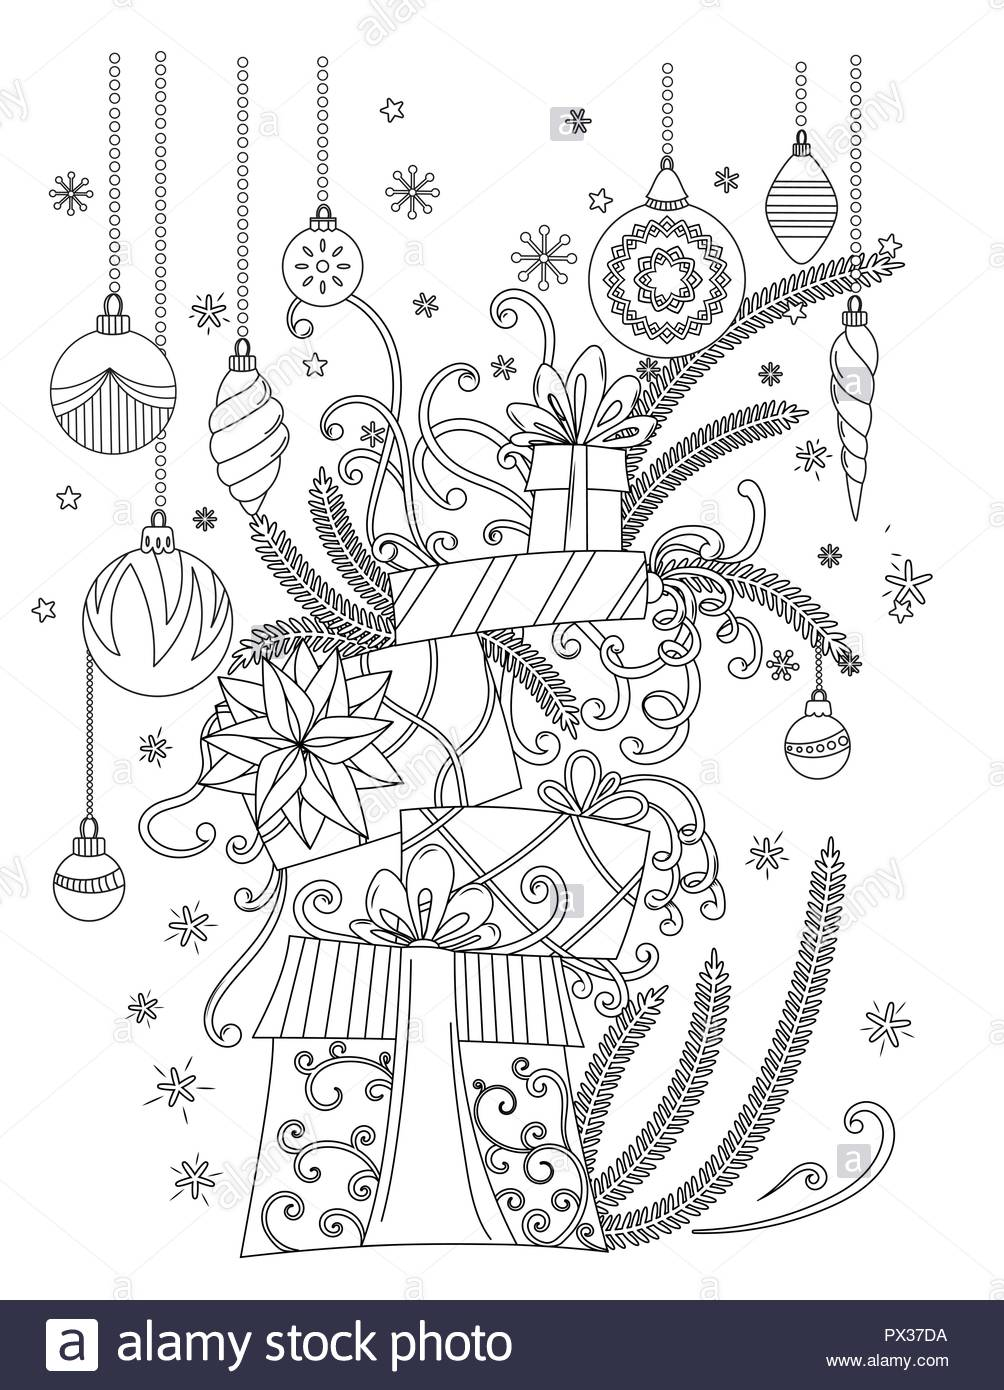 Christmas Coloring Pages Snowflakes With Book For Adults Pile Of Holiday